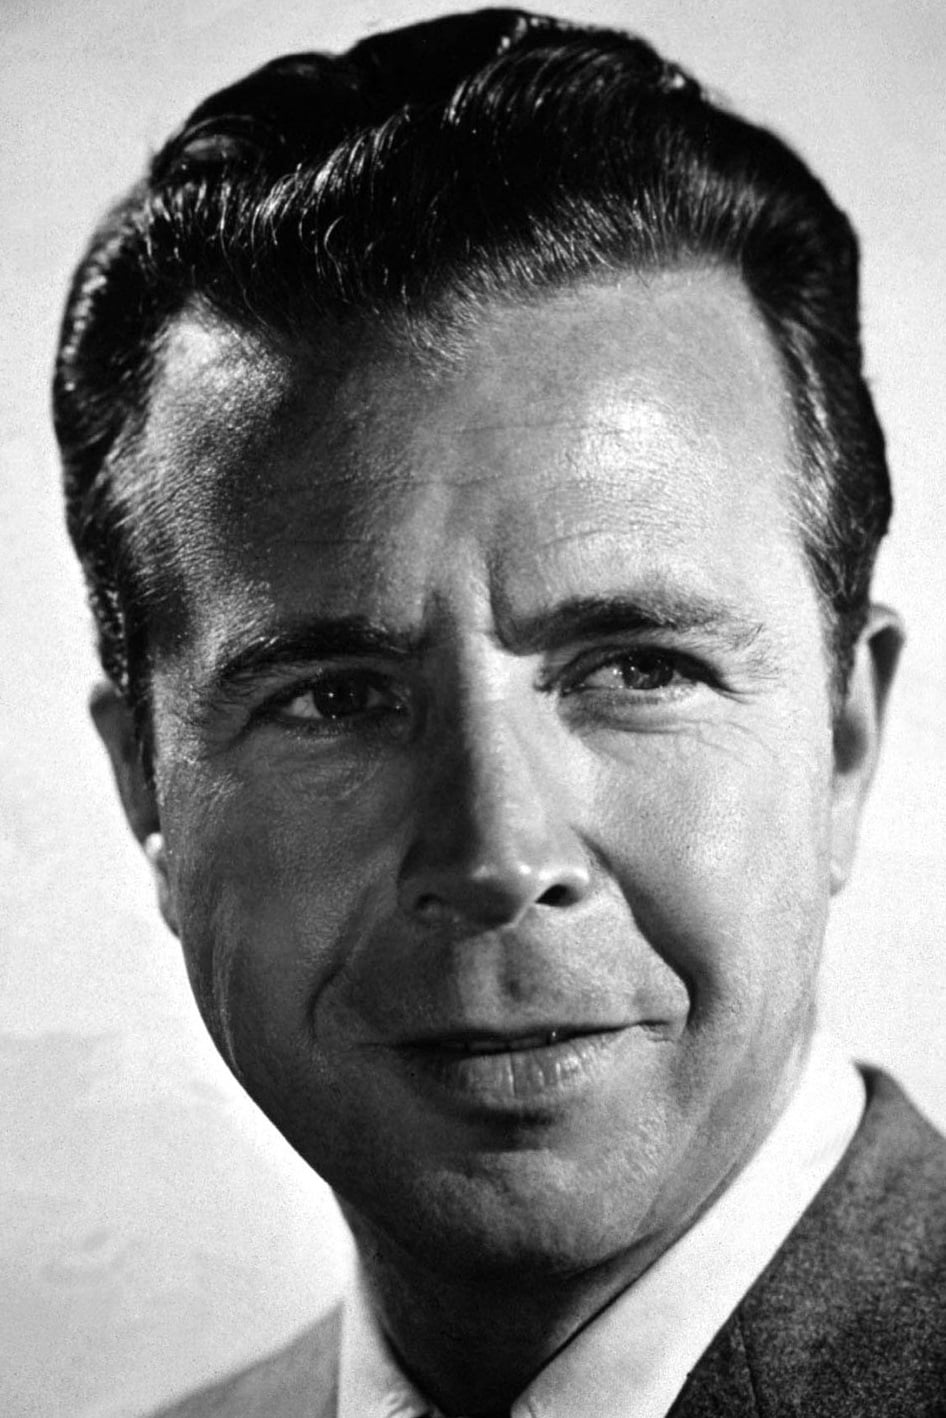 Dick powell, vintage actor painting by john springfield